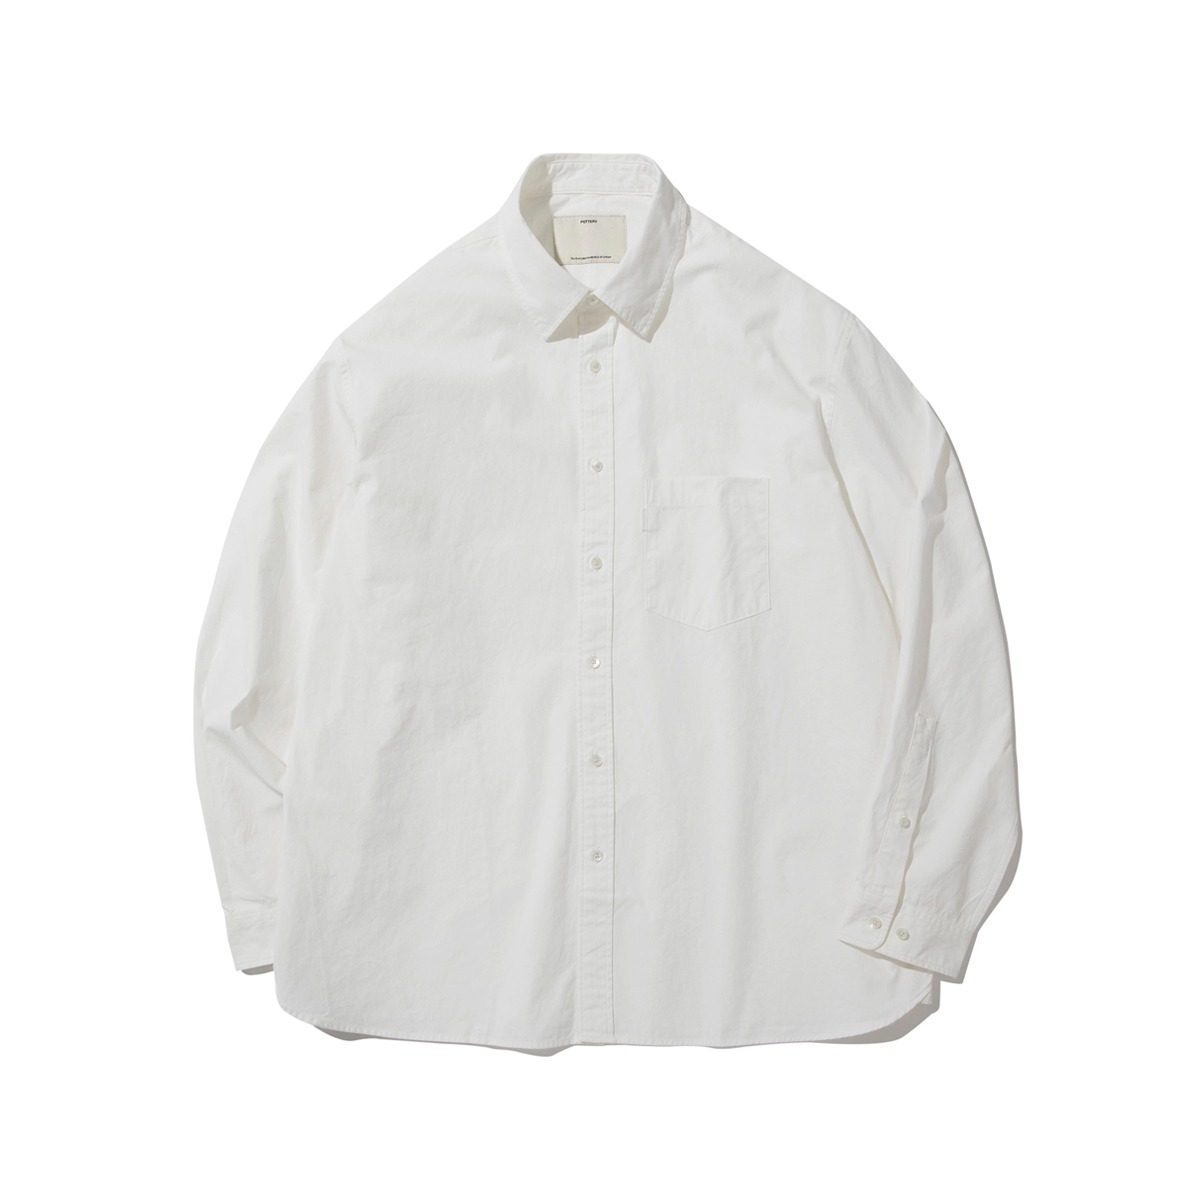 [POTTERY] COMFORT SHIRT 'WHITE'